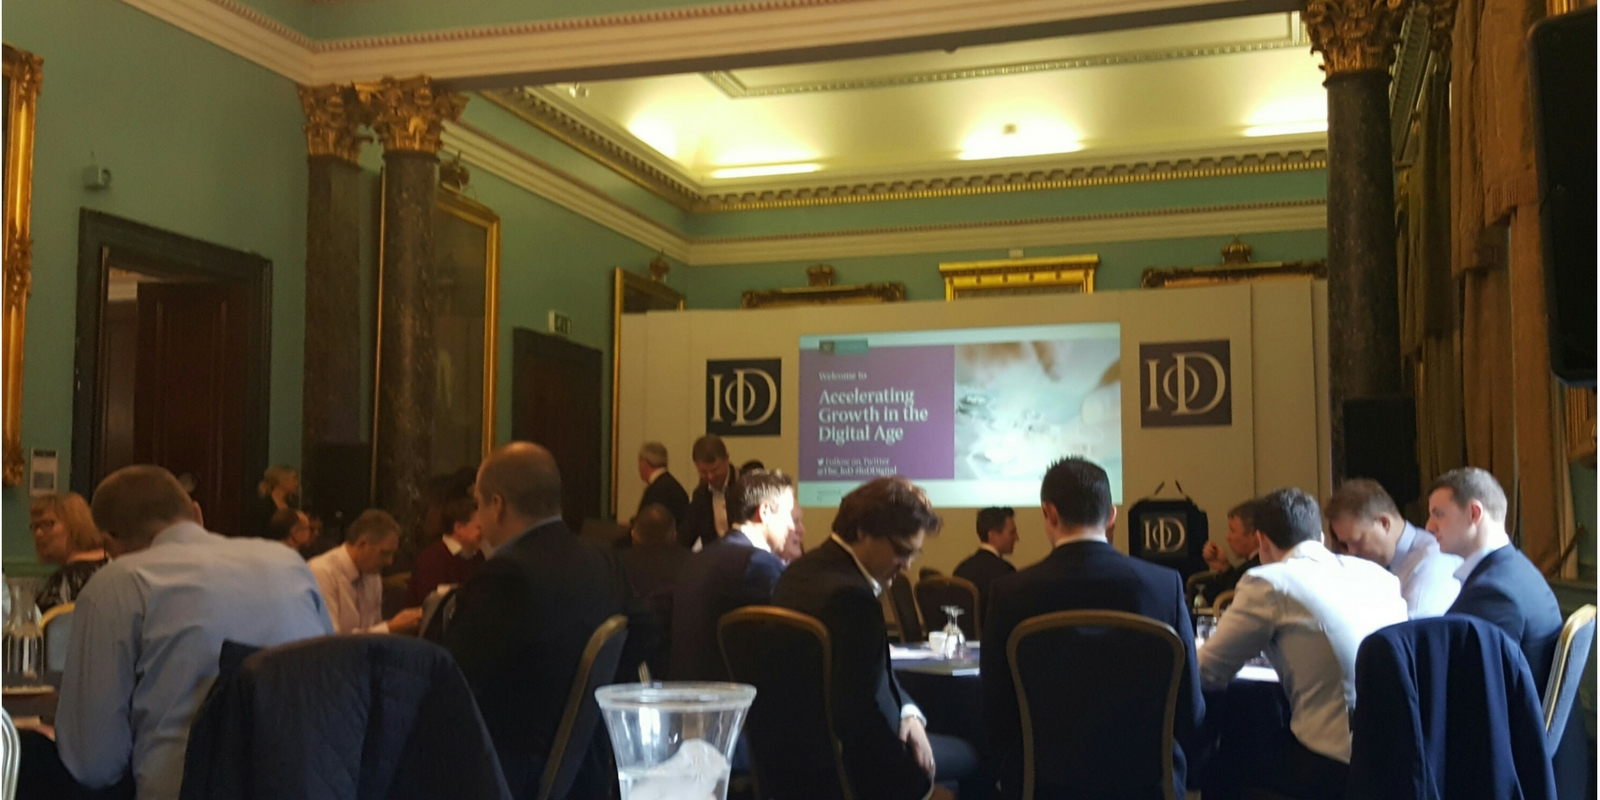 Presentation at the Institute of Directors